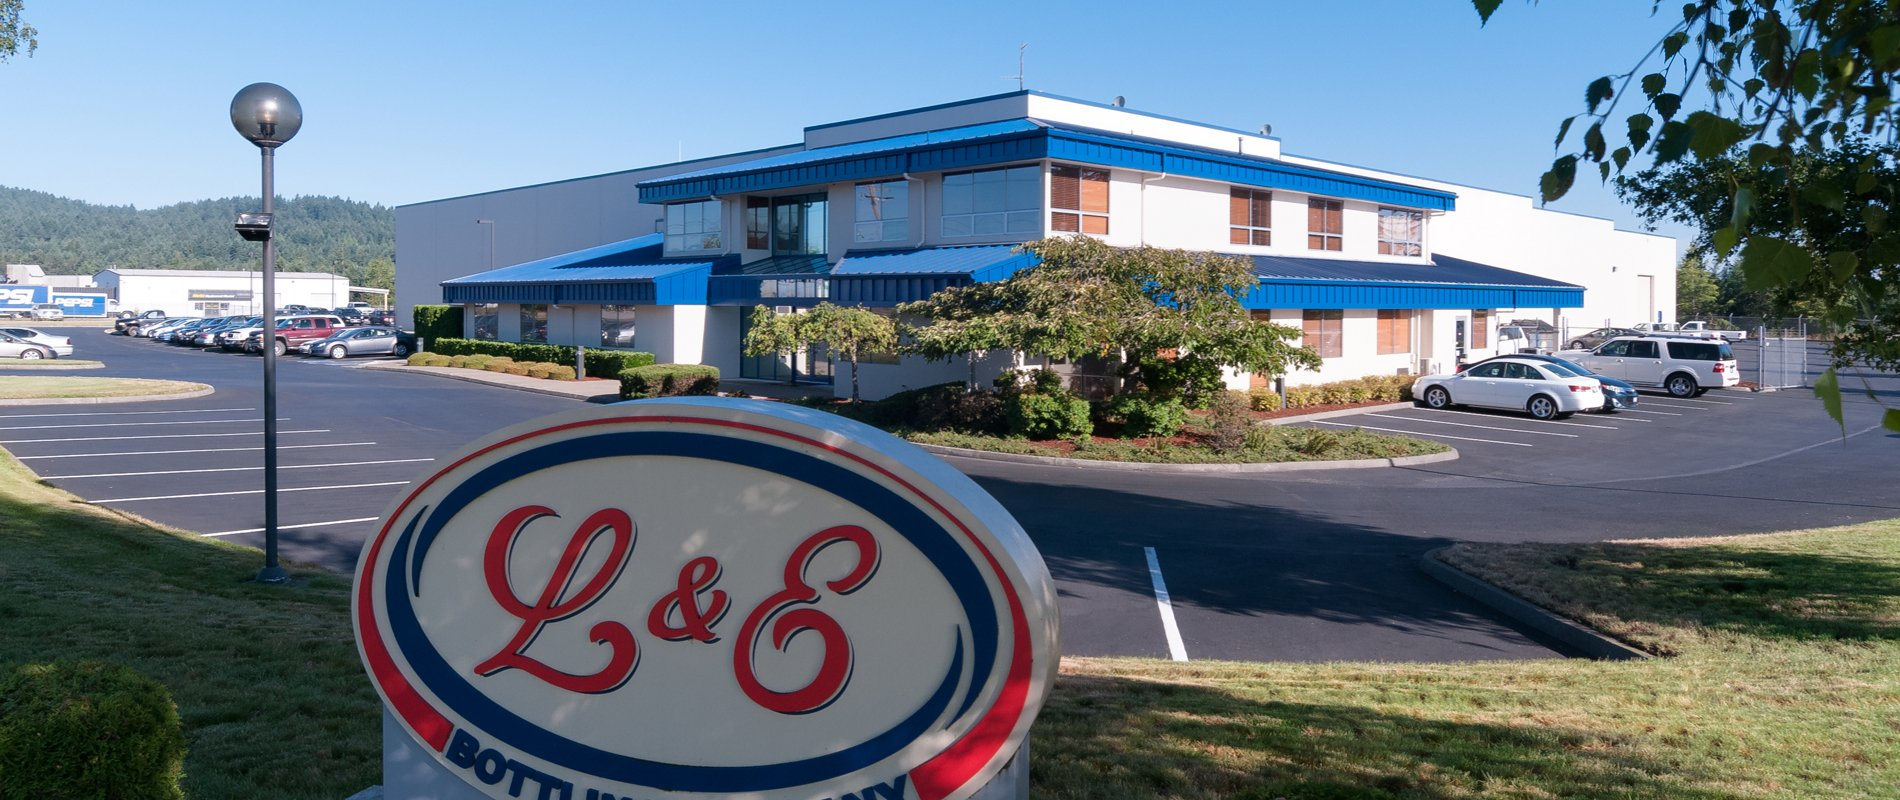 Berschauer Group building construction of L&E Bottling in Olympia WA